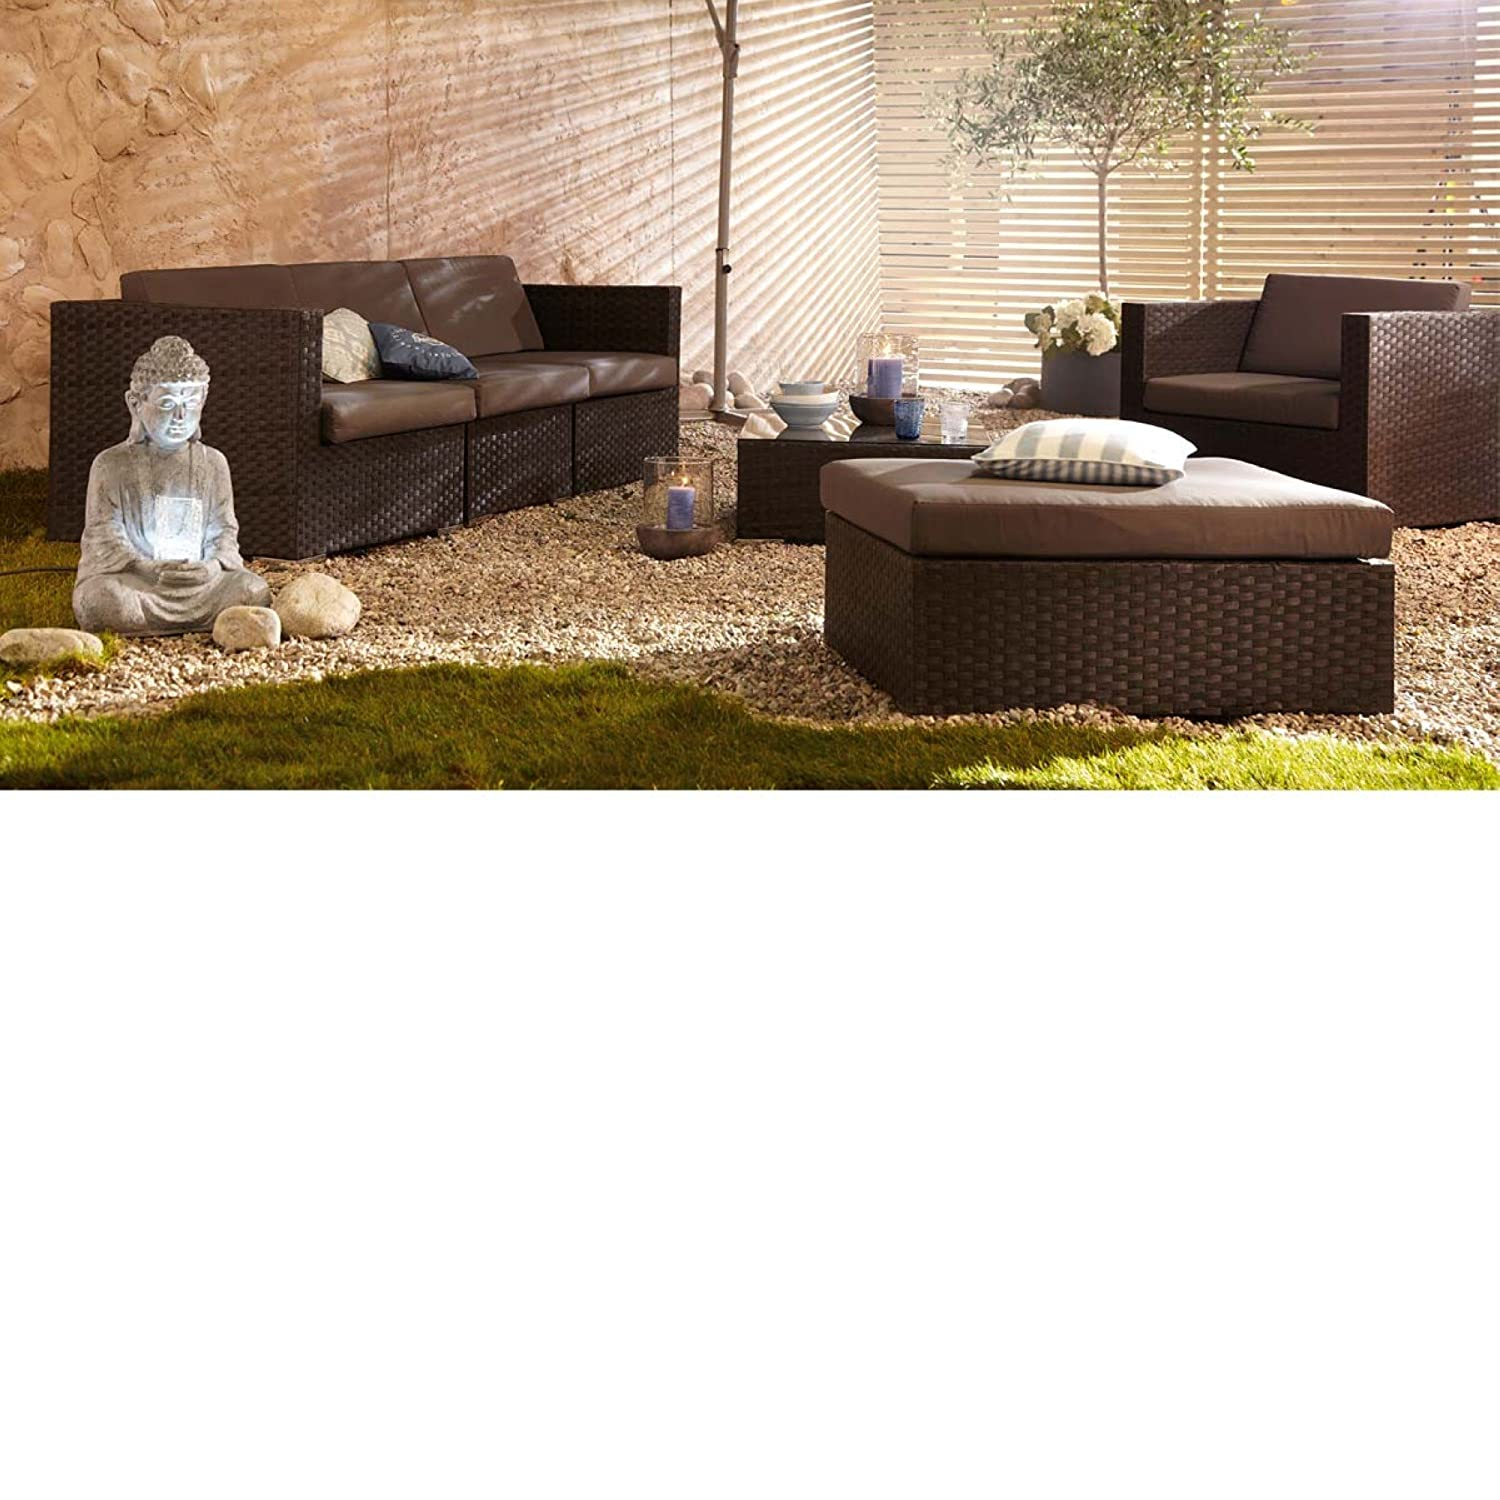 gartenm bel set aus kunstrattan mit auflagen 6 teilig. Black Bedroom Furniture Sets. Home Design Ideas